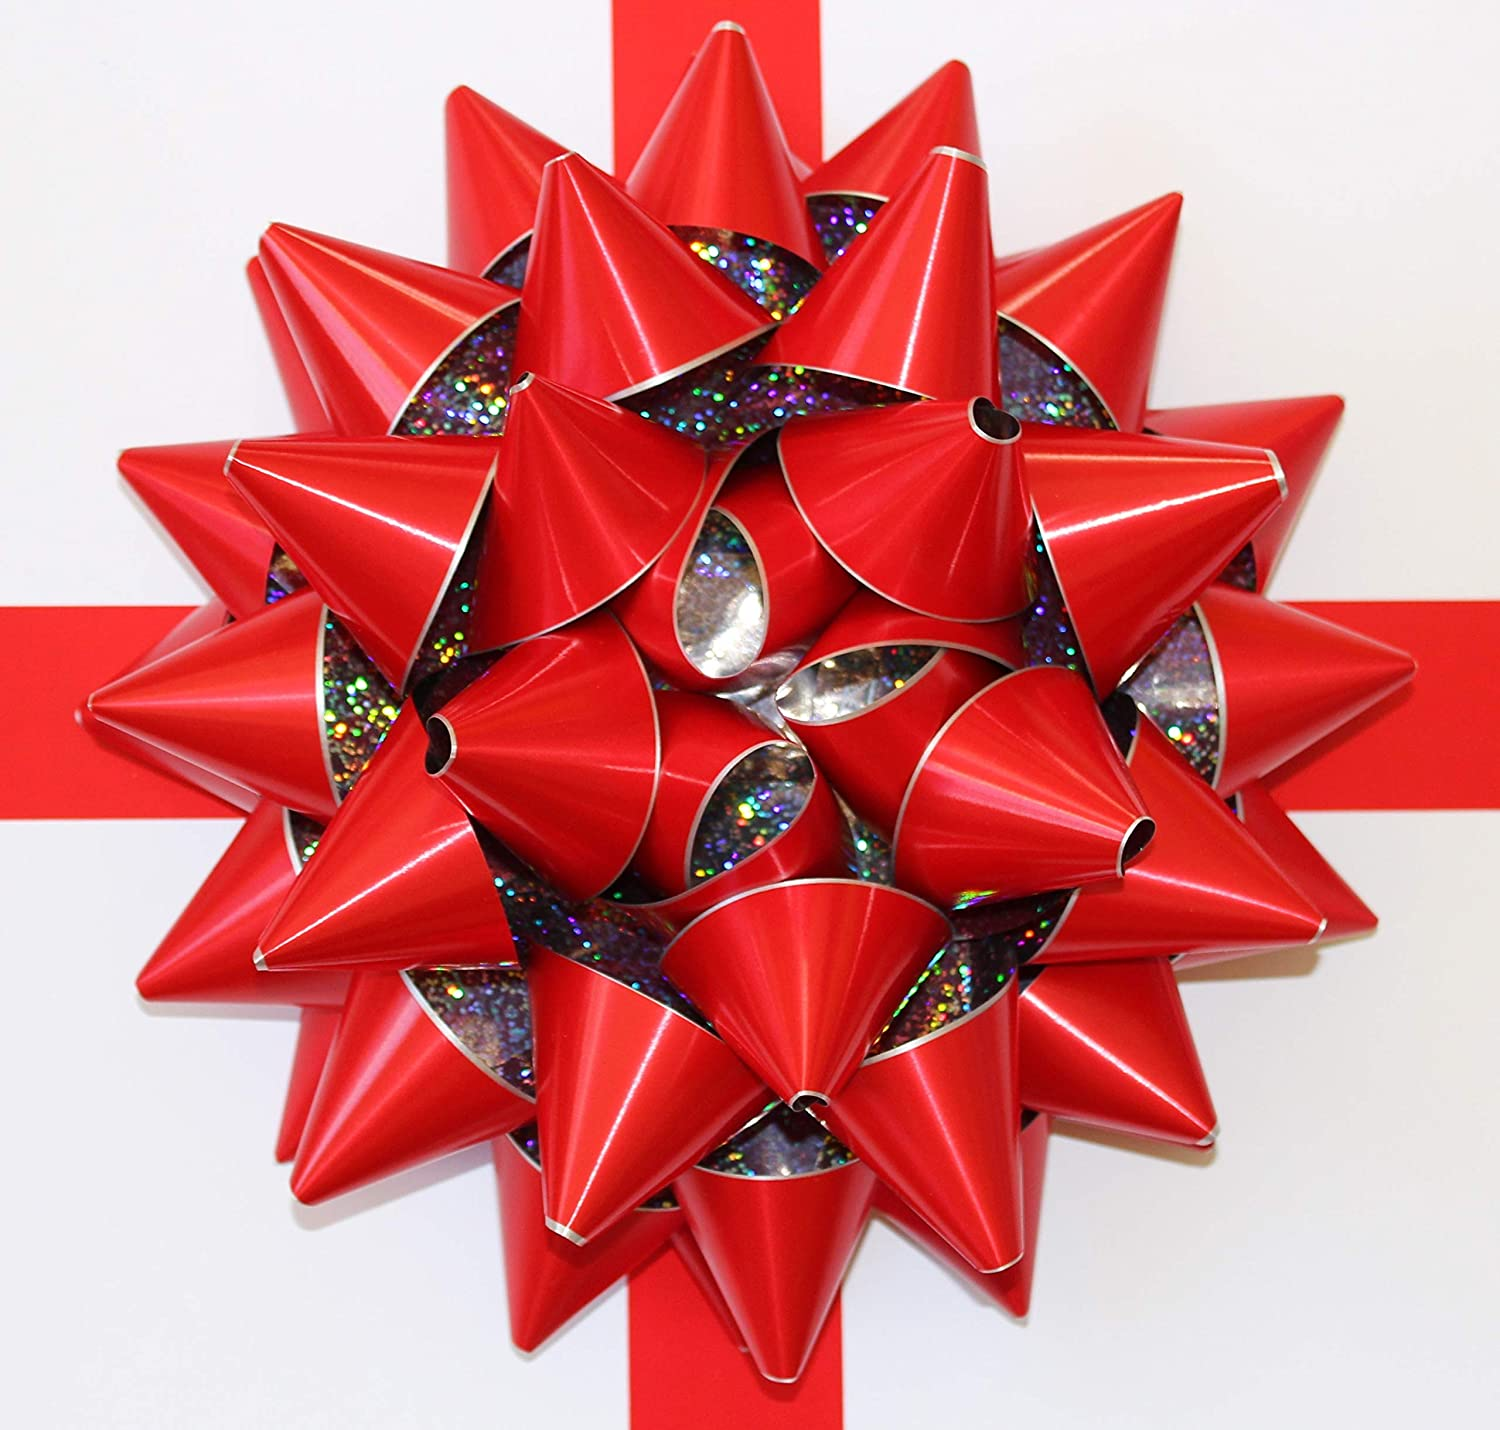 30cm RED Giant Bow for Large Present Venue Decor New car bow Oversized Gift Bow